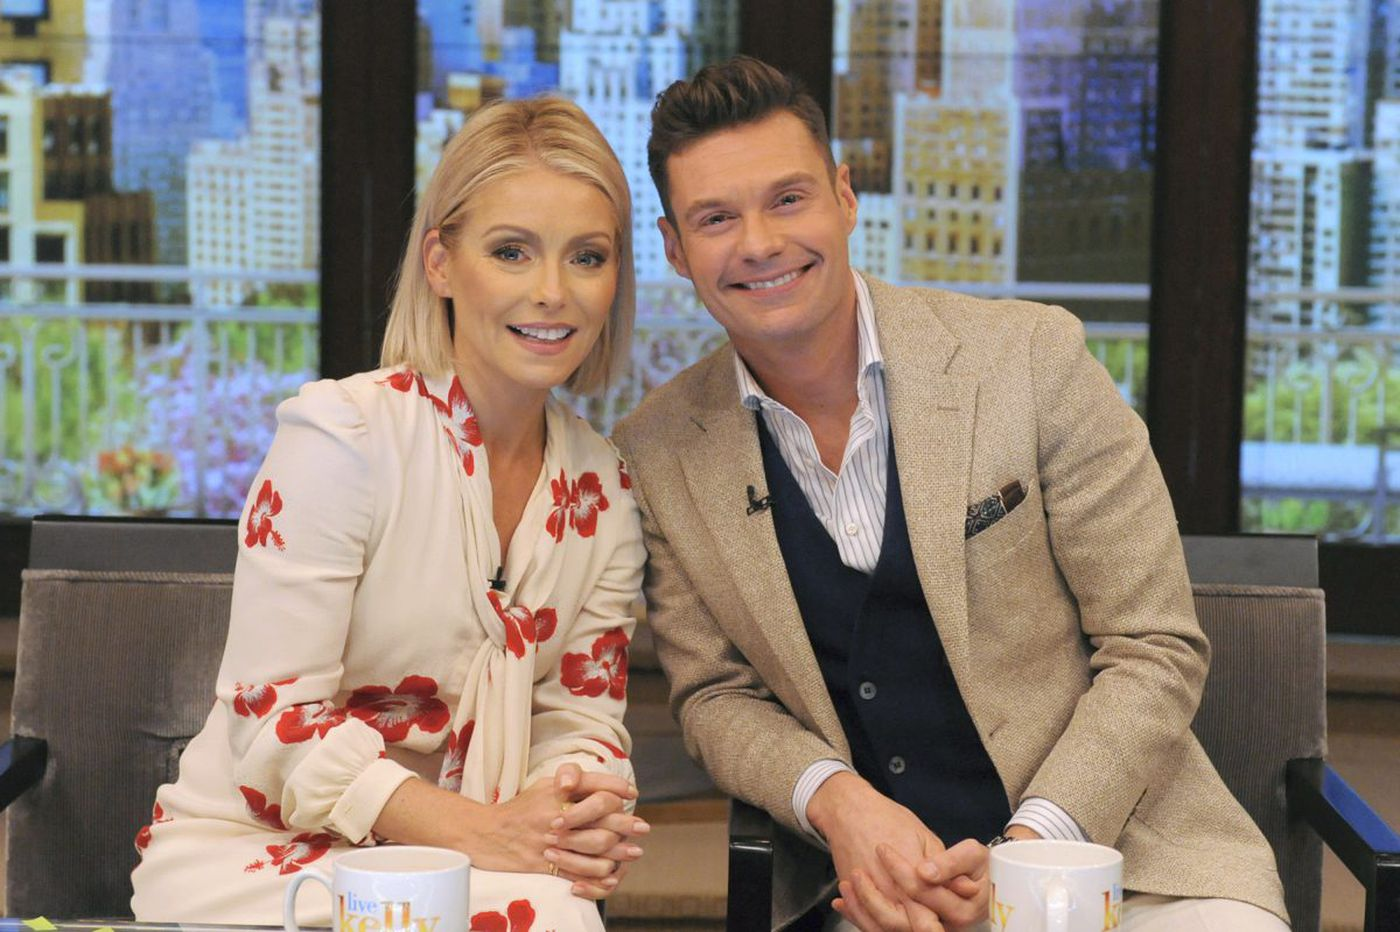 'Live with Kelly and Ryan' audience members start Eagles chant on air